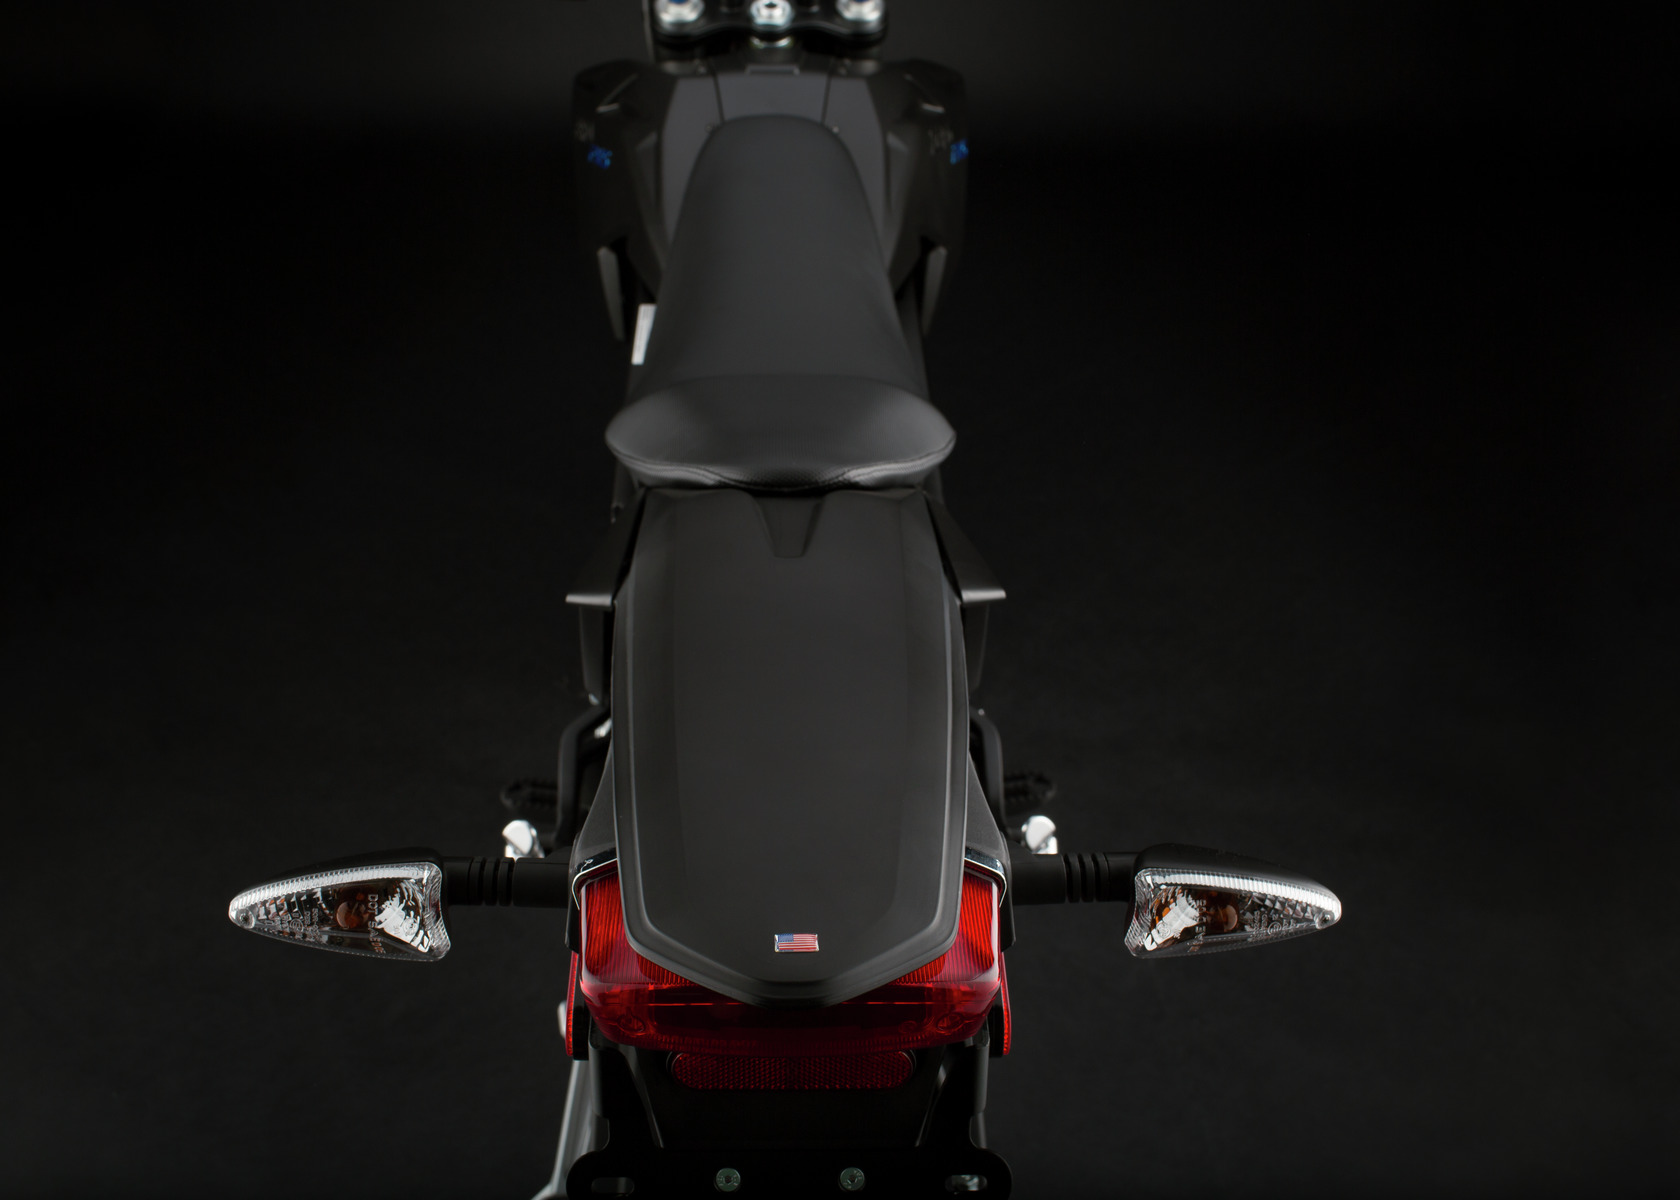 2016 Zero FXS Electric Motorcycle: Rear View